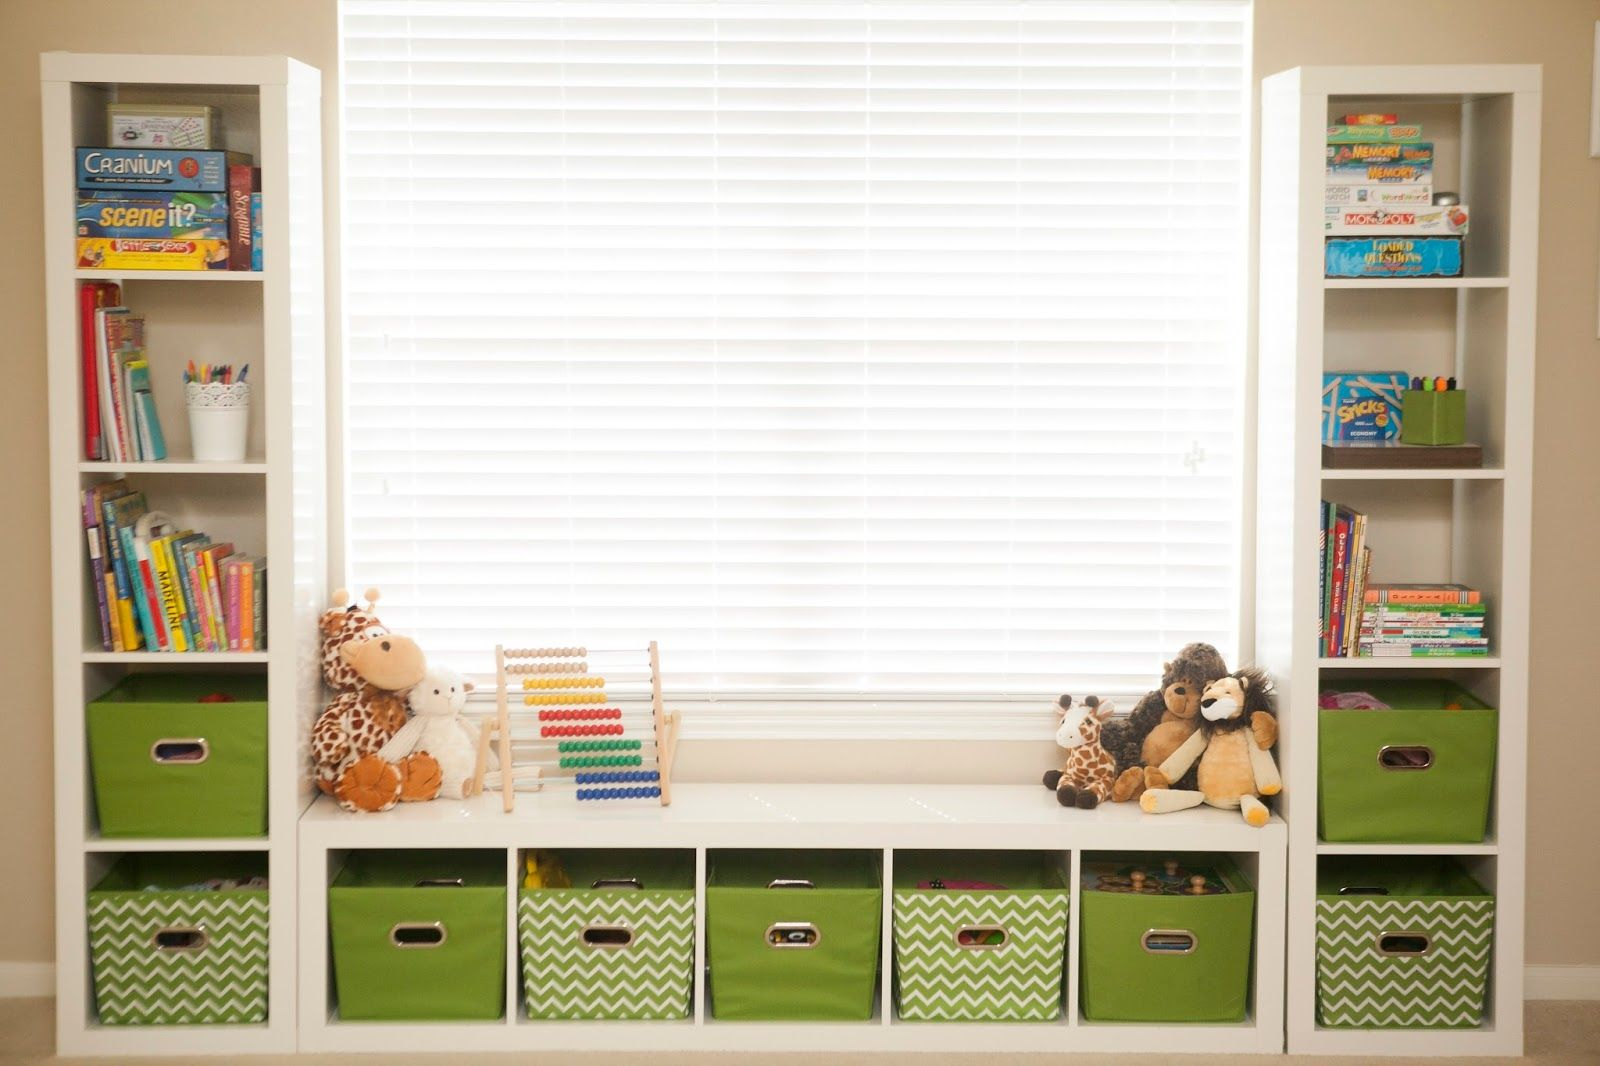 childrens storage furniture playrooms. MyBellaBug : Playroom: Seating Bench And Toy Storage #idea #storage Childrens Furniture Playrooms R